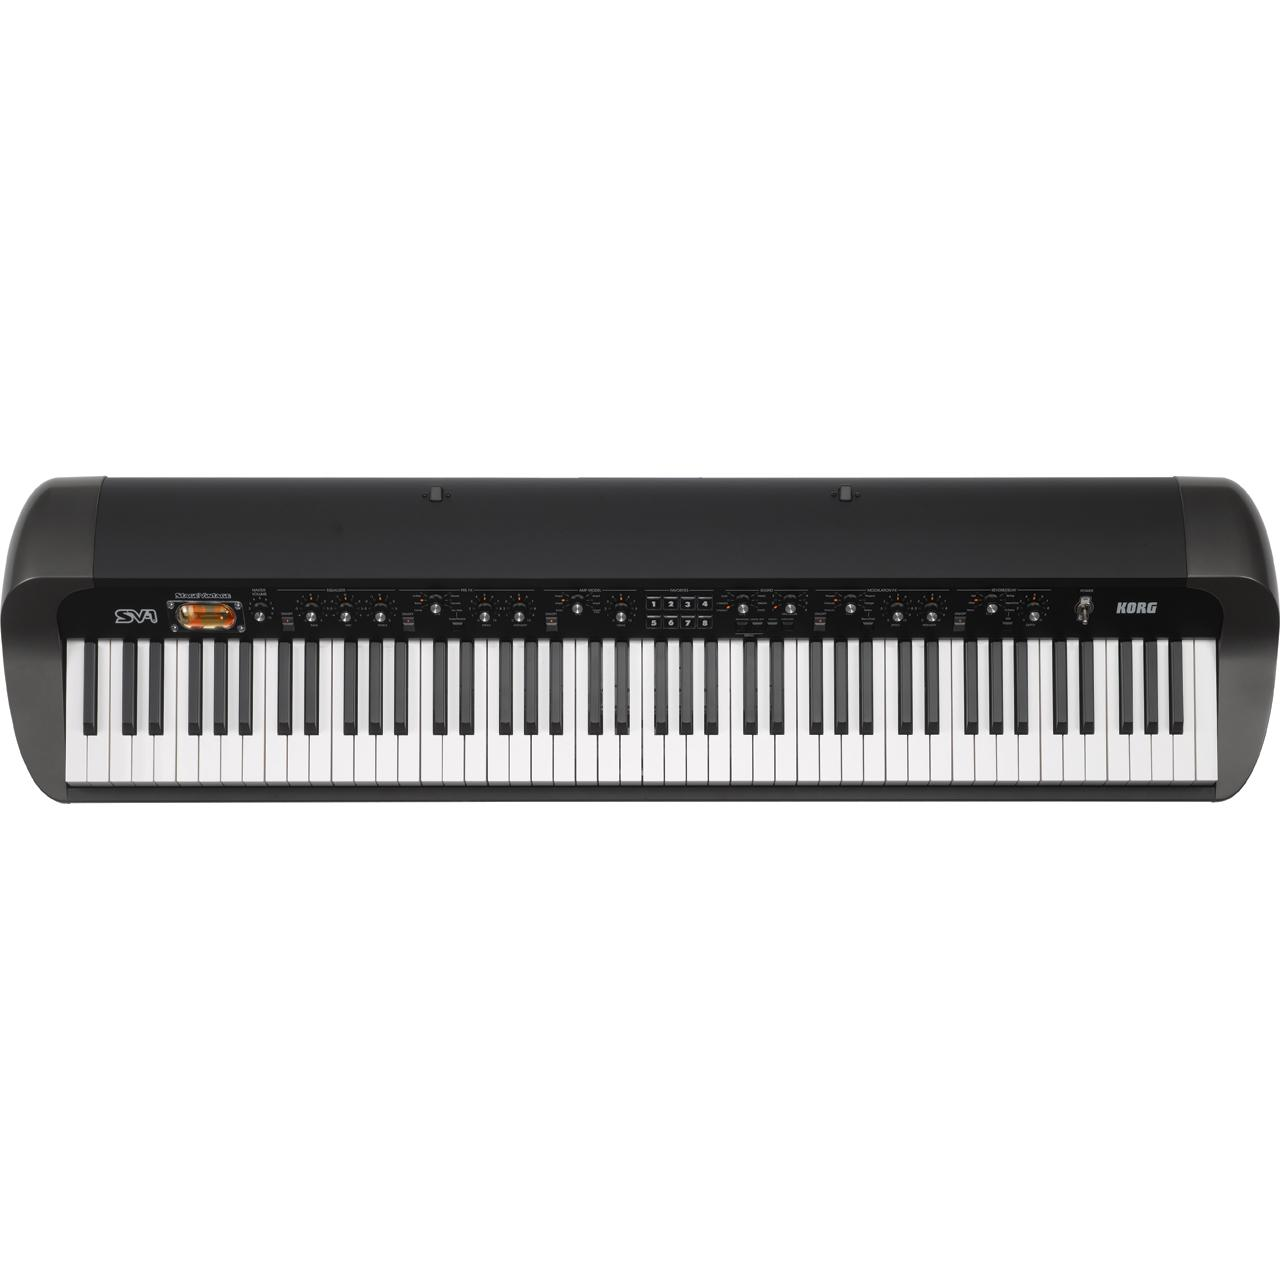 Sv 1 absolute pianoabsolute piano for Korg or yamaha digital piano